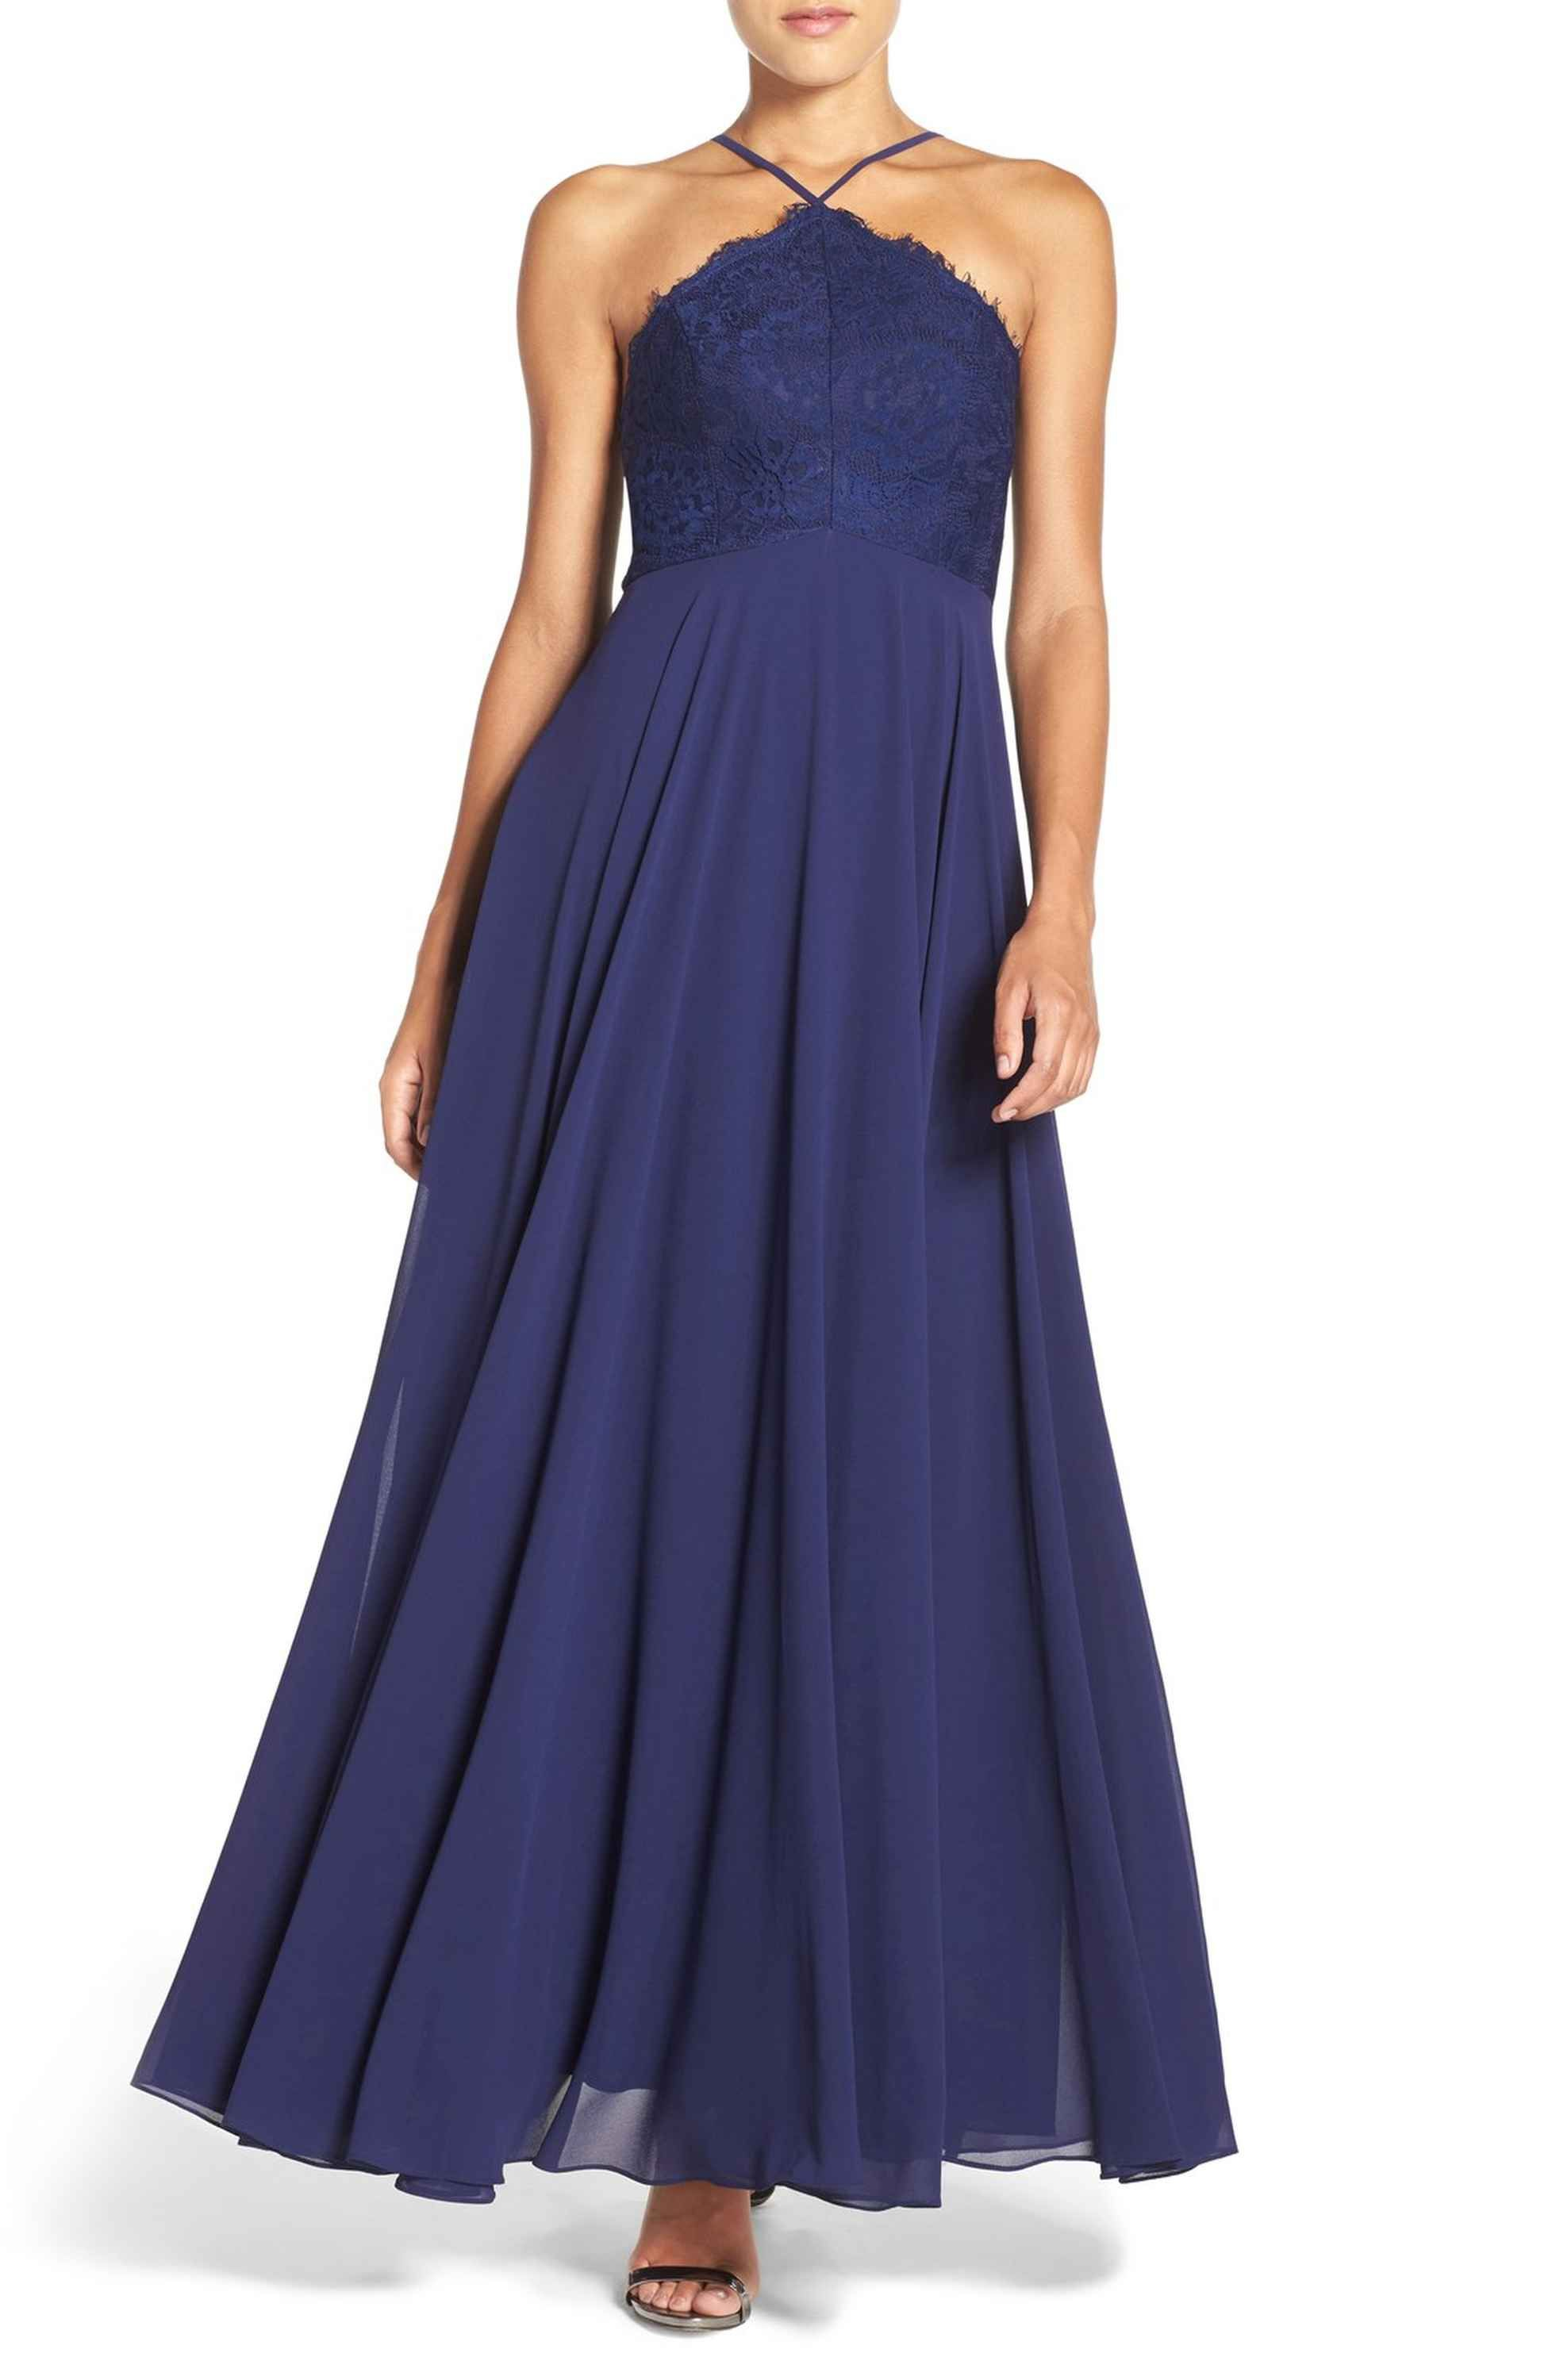 Main image lulus high neck lace u chiffon gown navy small